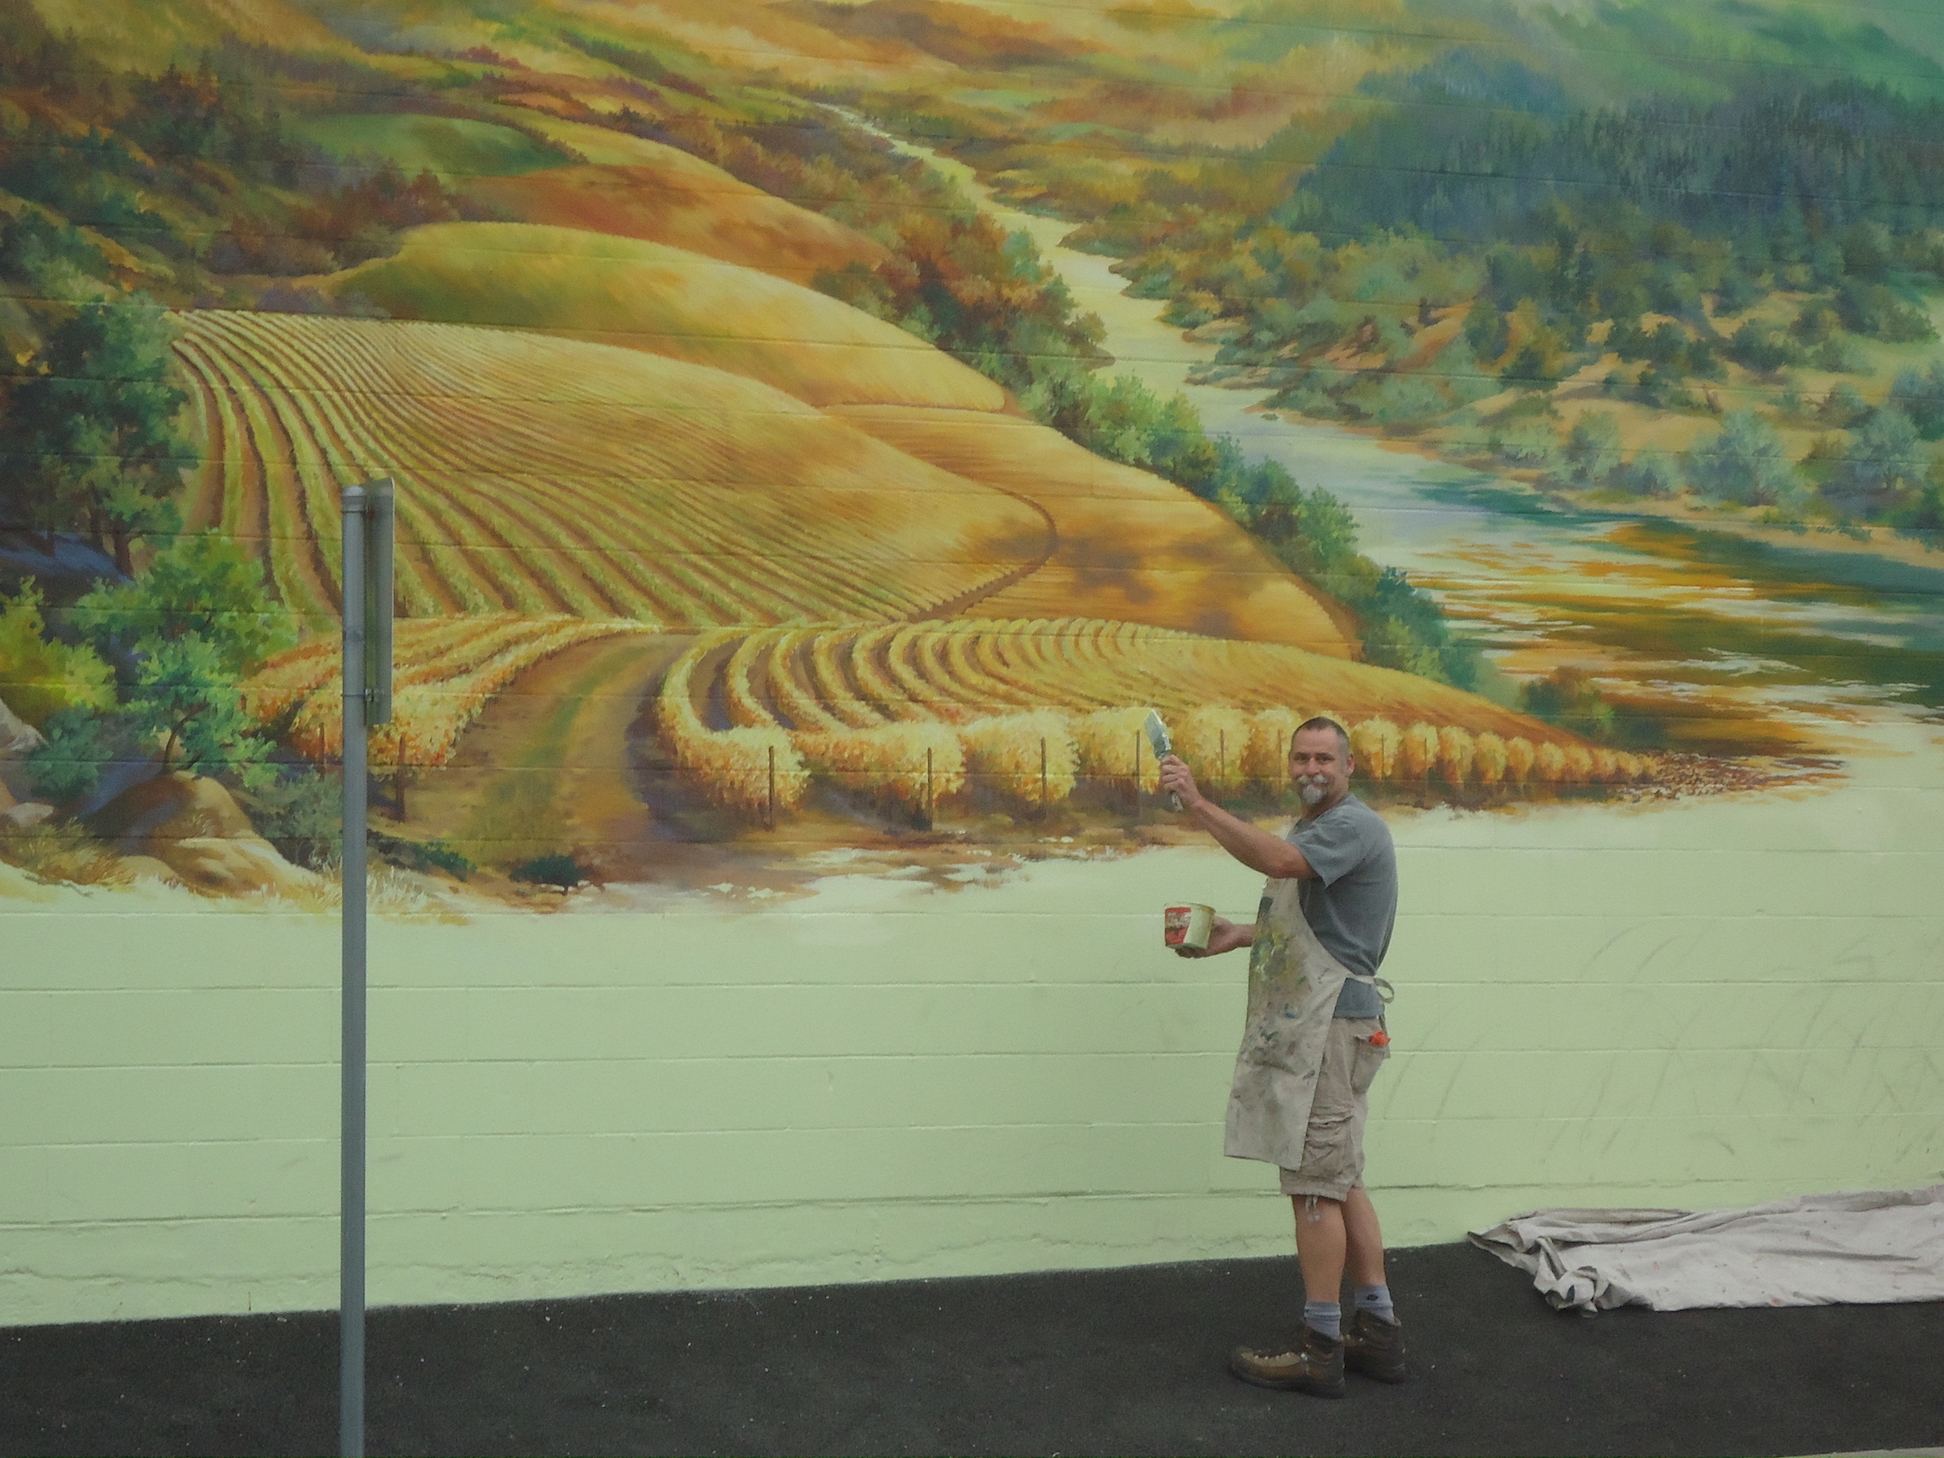 Third section being painted by Bob Eding Summer 2015